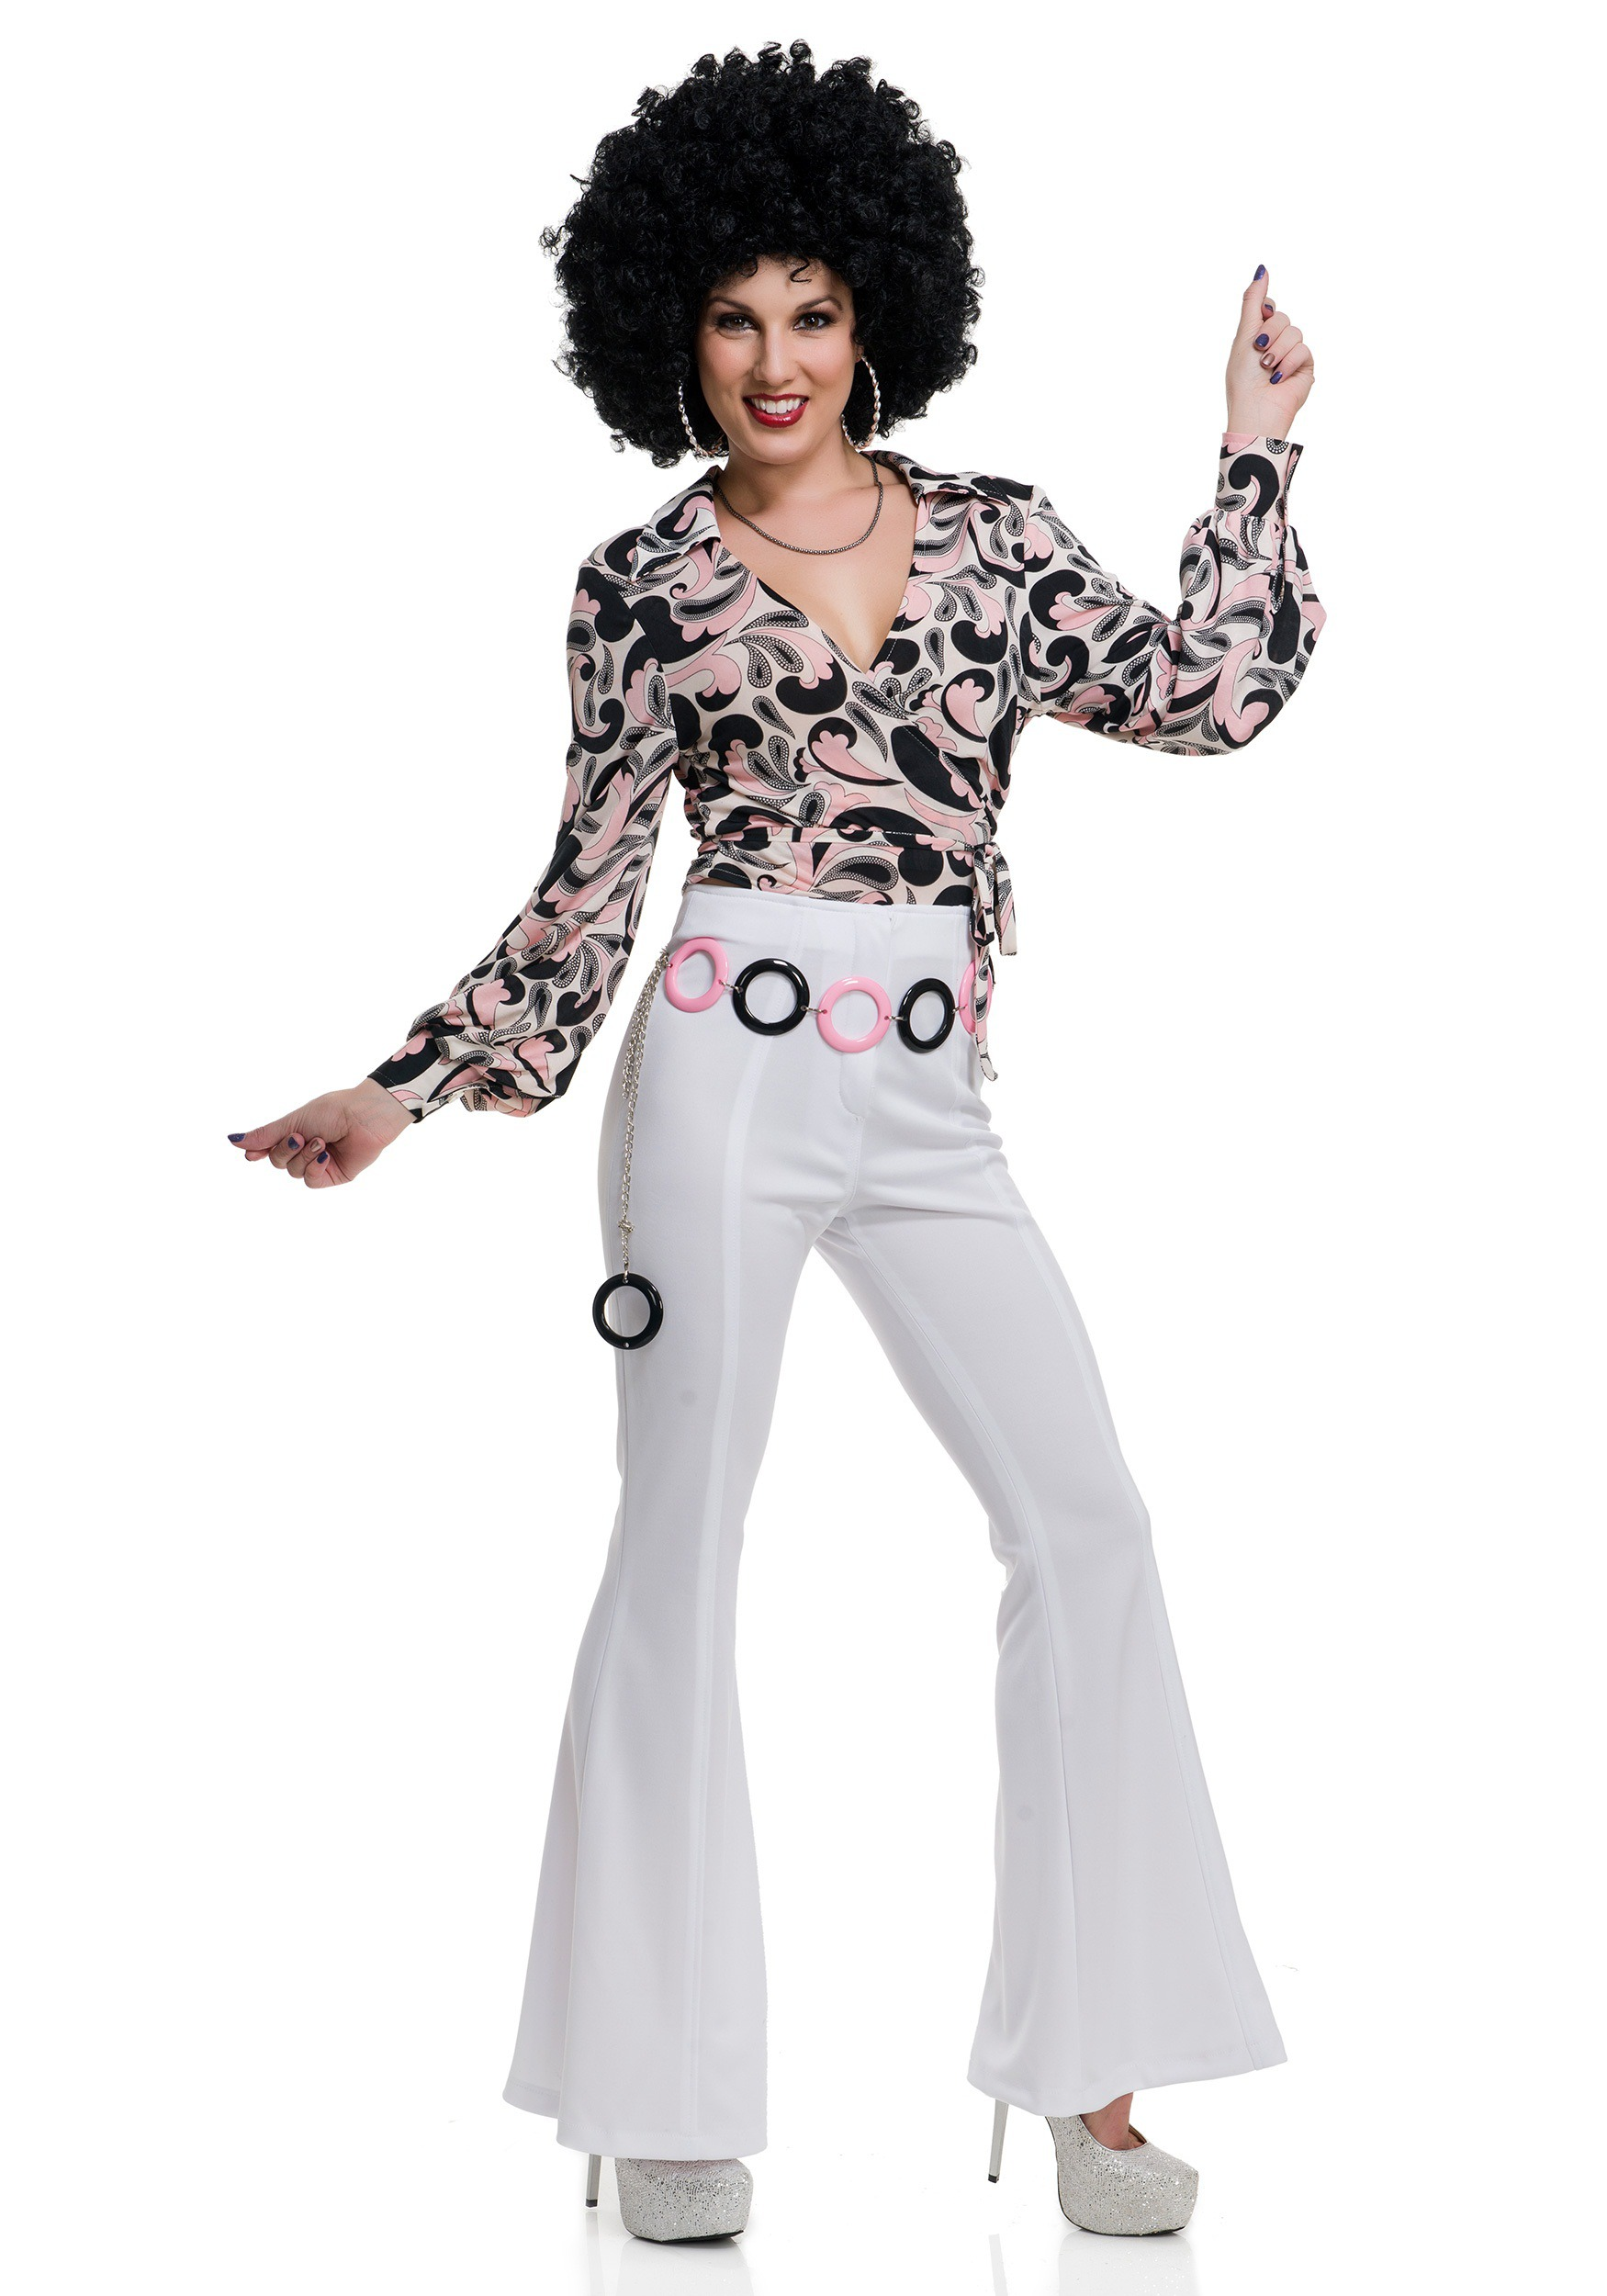 c5918e51 Disco Dance Costumes & Dresses for Adults - HalloweenCostumes.com